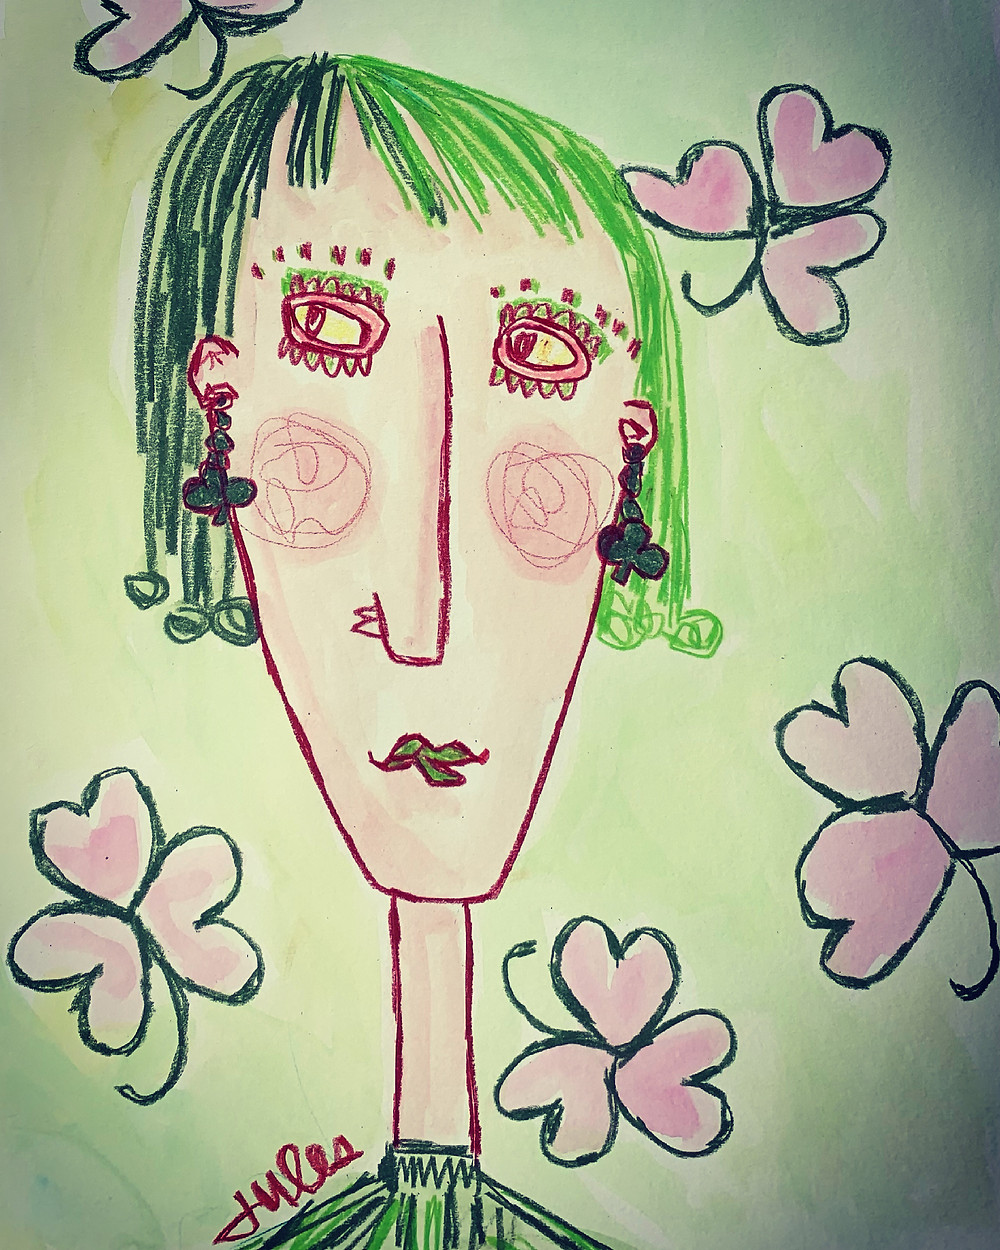 """BiTsy SnoDgraSs has f o r e v e r believed that St. Patrick's Day was a l❤️ve day in disguise. To Bitsy, it was obvious that a shamrock was, indeed, a heart-leaf cluster...but in green.   And so, on this day, she put extra effort into finding her love match.   Gordy, across the street, and down three blocks, was her hopeful love this St. Patrick's Day.   Her tactic was simple. She knew the exact time when he walked, Bill, his rescued shepherd.   She would dress in green, dye her hair to match, tint her eyebrows & eyelashes for extra affect, and finish with her newly purchased, """"lime-glow sizzle"""" lipstick. This was all for a perfect conversation starter, and most appropriate for this day.   It was 6:40 am. Bitsy stepped out of her door and anxiously walked her love path.  Her eyes caught his plaid jacket a block away. Her heart pitter-pattered. She drew closer.   """"What?!"""" A woman from nowhere raced up behind him, & threw her arms around her Gordy!   Who was this interference? Her heart stopped. Bitsy could barely watch. He whisked around and returned her embrace.   Bitsy was now just steps away from this awkward encounter. Her love match was evaporating before her eyes. It was like watching a bad movie.   Would he kiss this intruder...Bitsy's kiss, on her love day?   Just then Bitsy  tripped. She let out a shrill shriek!  When she looked up from the ground, there was Gordy, and his brown eyes.   He pulled her up, & asked if he could help her home.   Where was the girl?!—-Oh...there she was, behind him.   Just how will this story end?! Who will meet Gordy's lips this St. Patrick's  Day of love?! And...who is that """"other"""" woman? ...You decide.   HaPpy St. Patrick's LoVe Day! ❤️☘️❤️"""